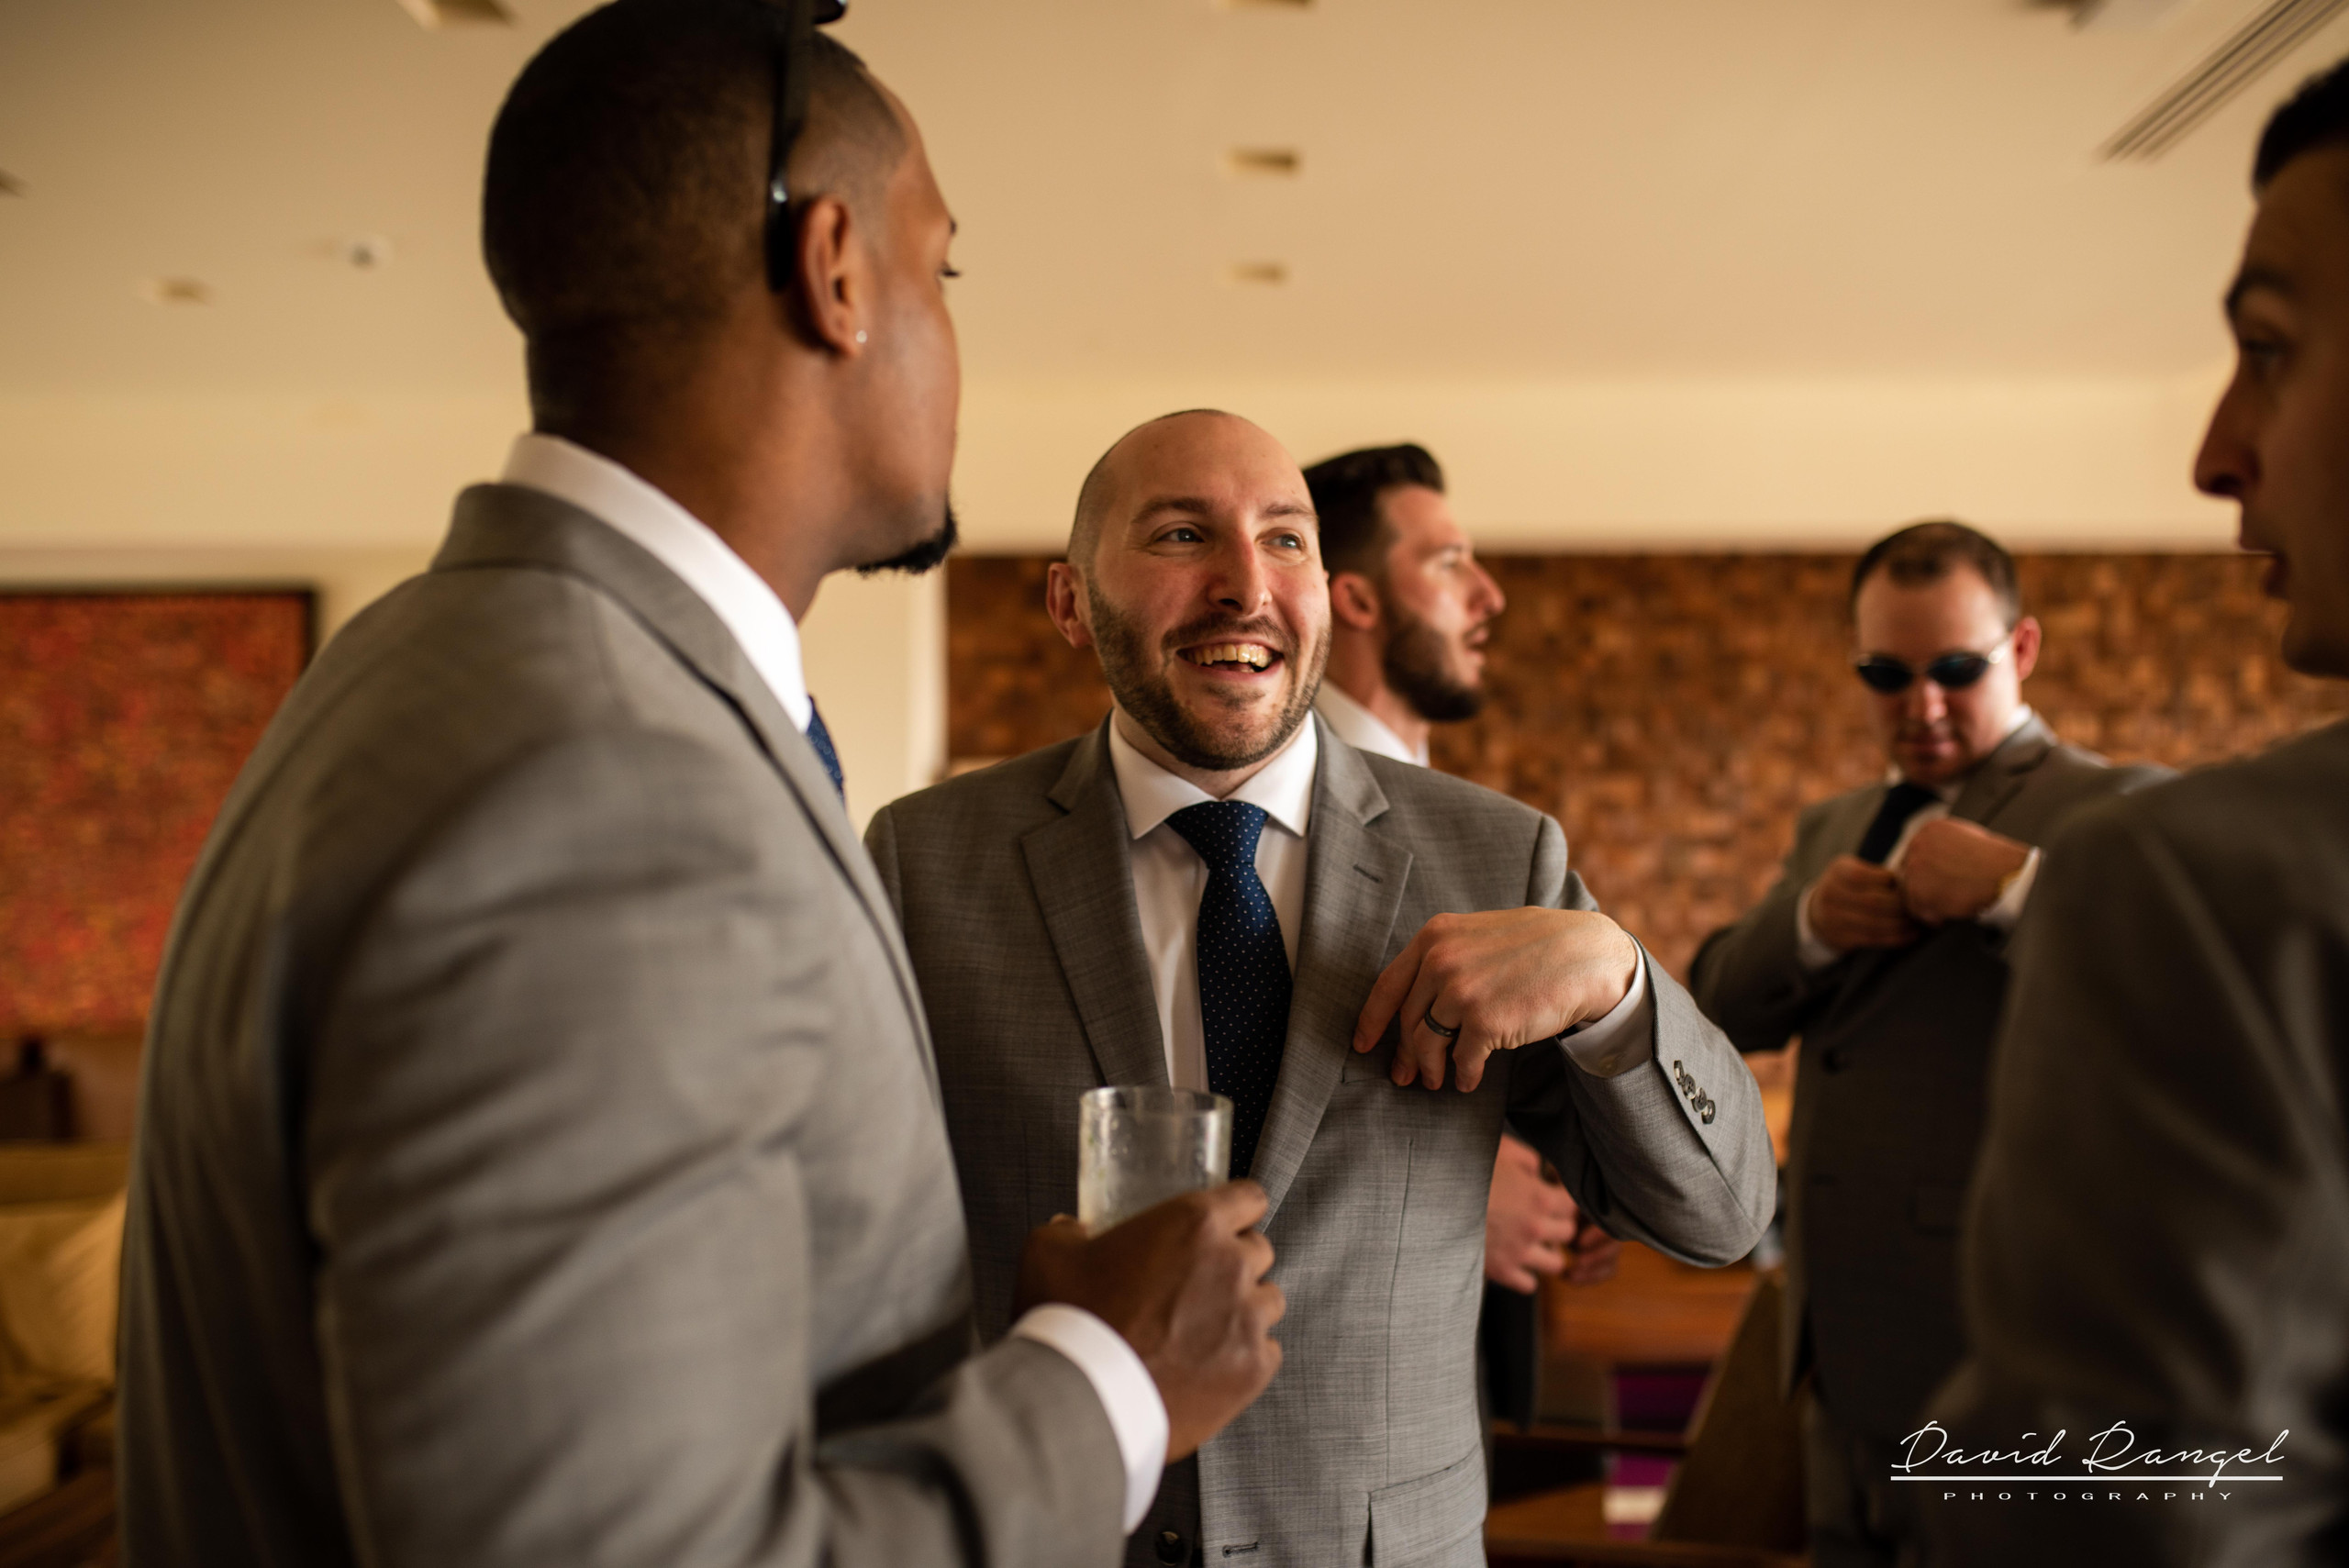 groom+best+men+suit+groomsmens